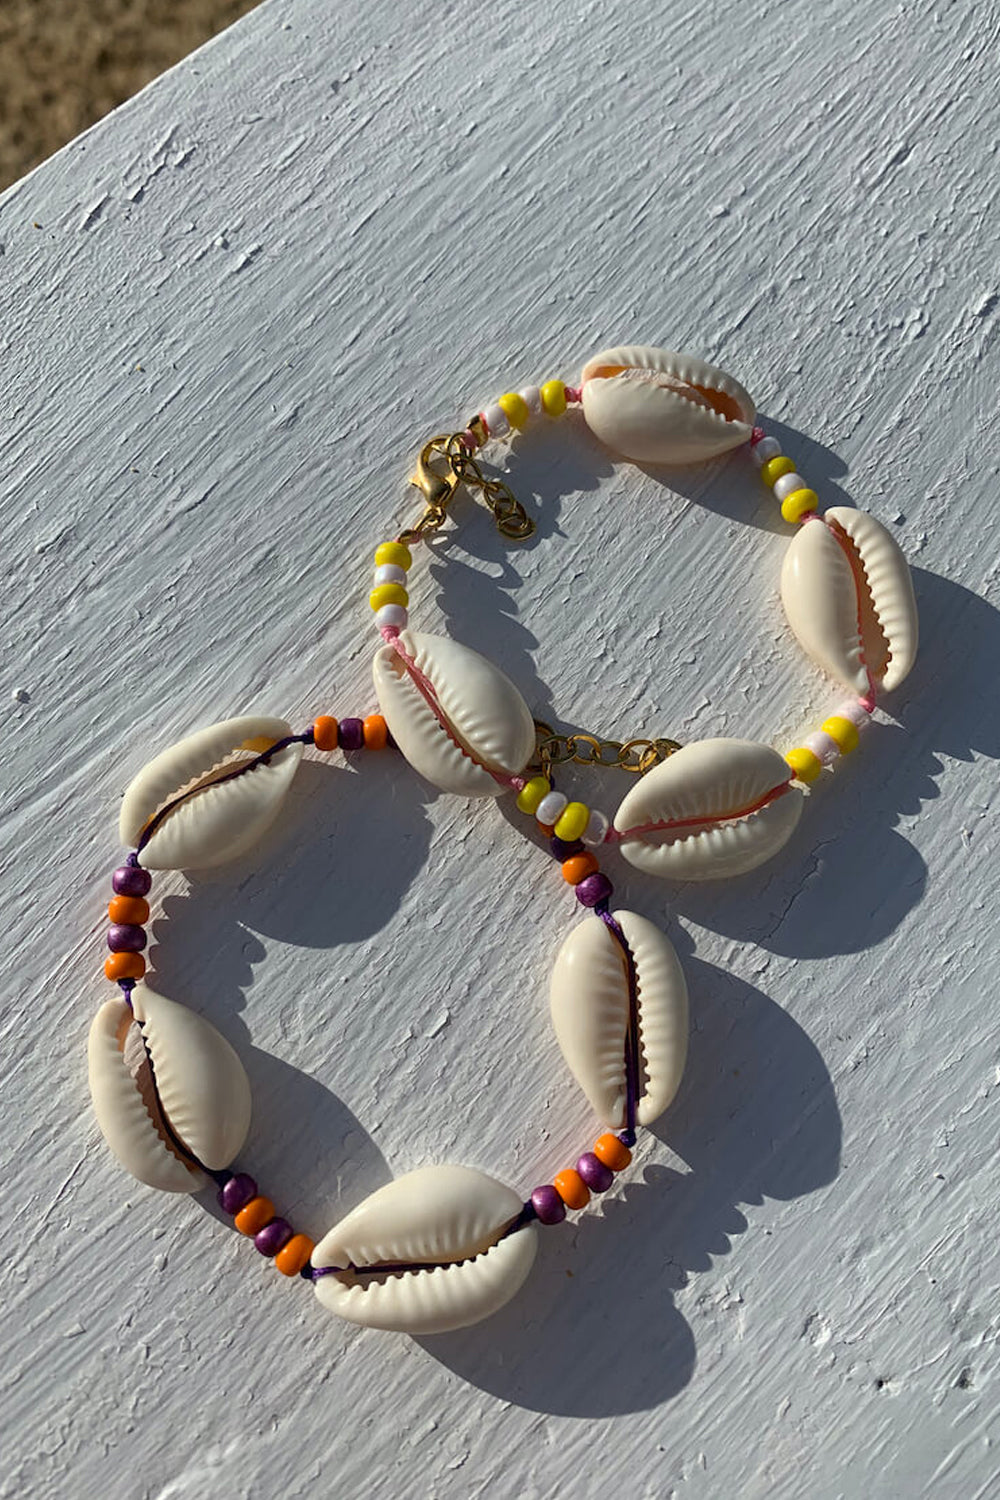 Shell we go to Bali bracelet